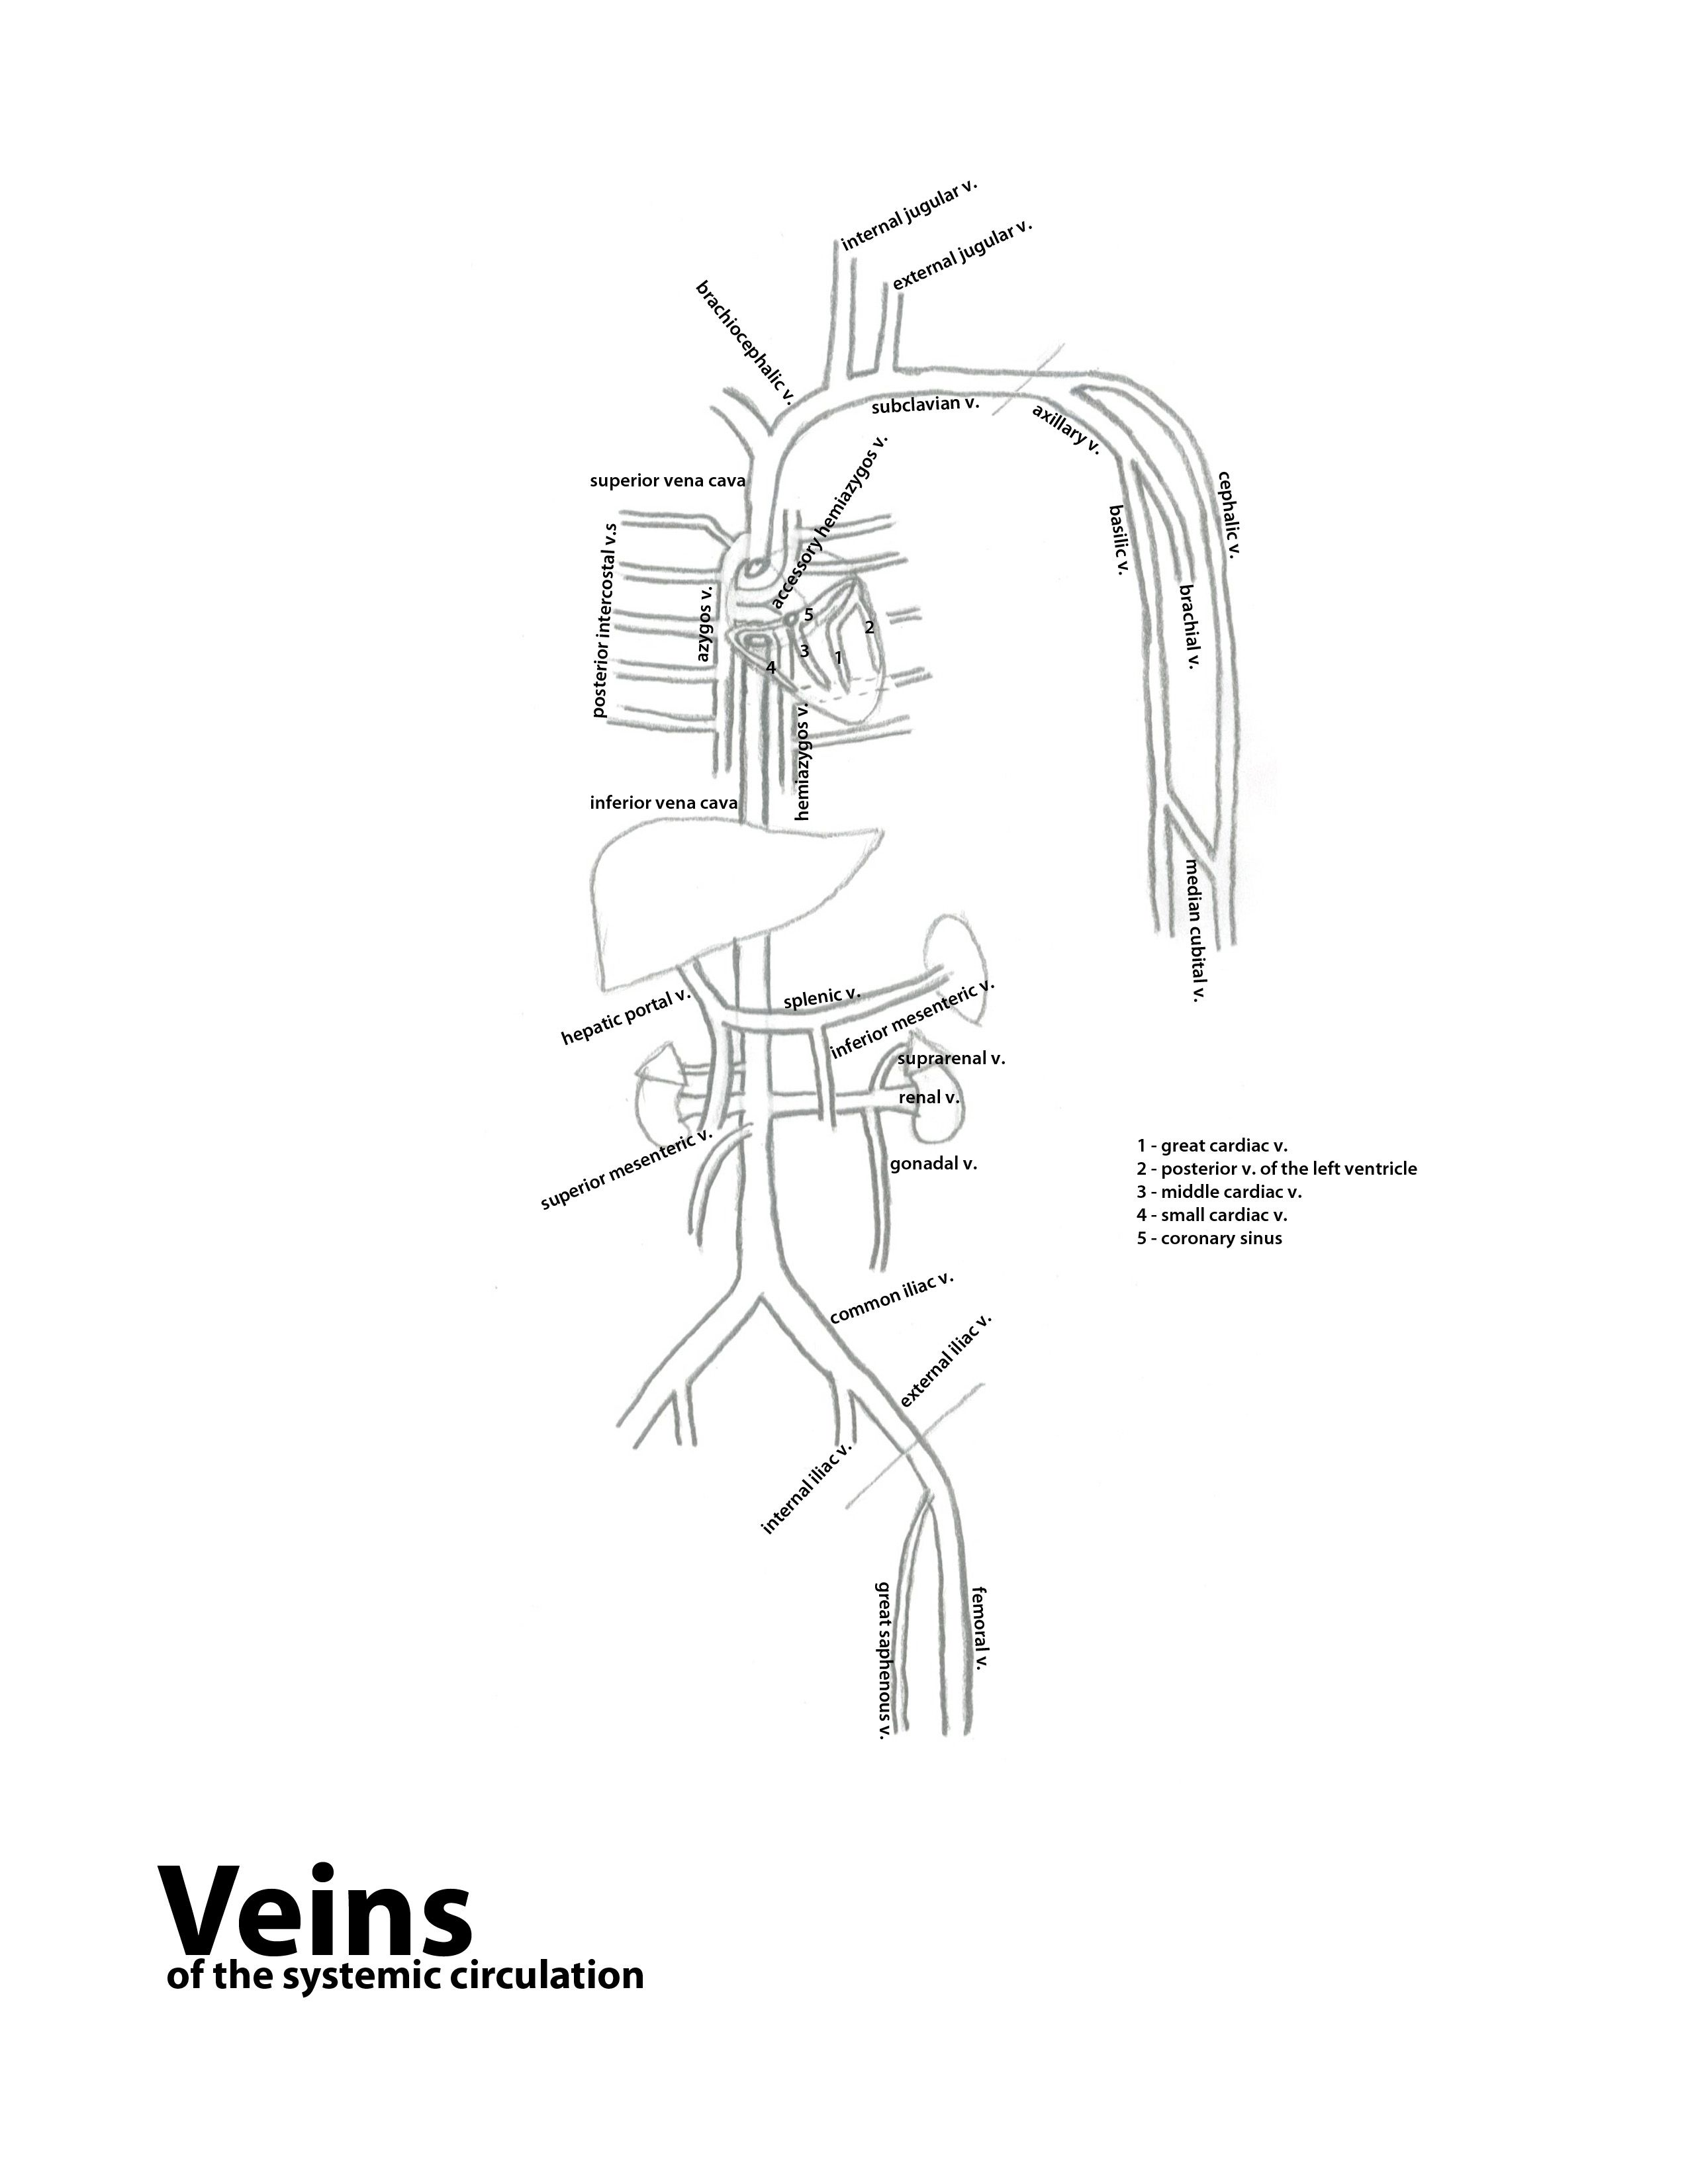 Human Body Arteries And Veins Diagram Unlabeled